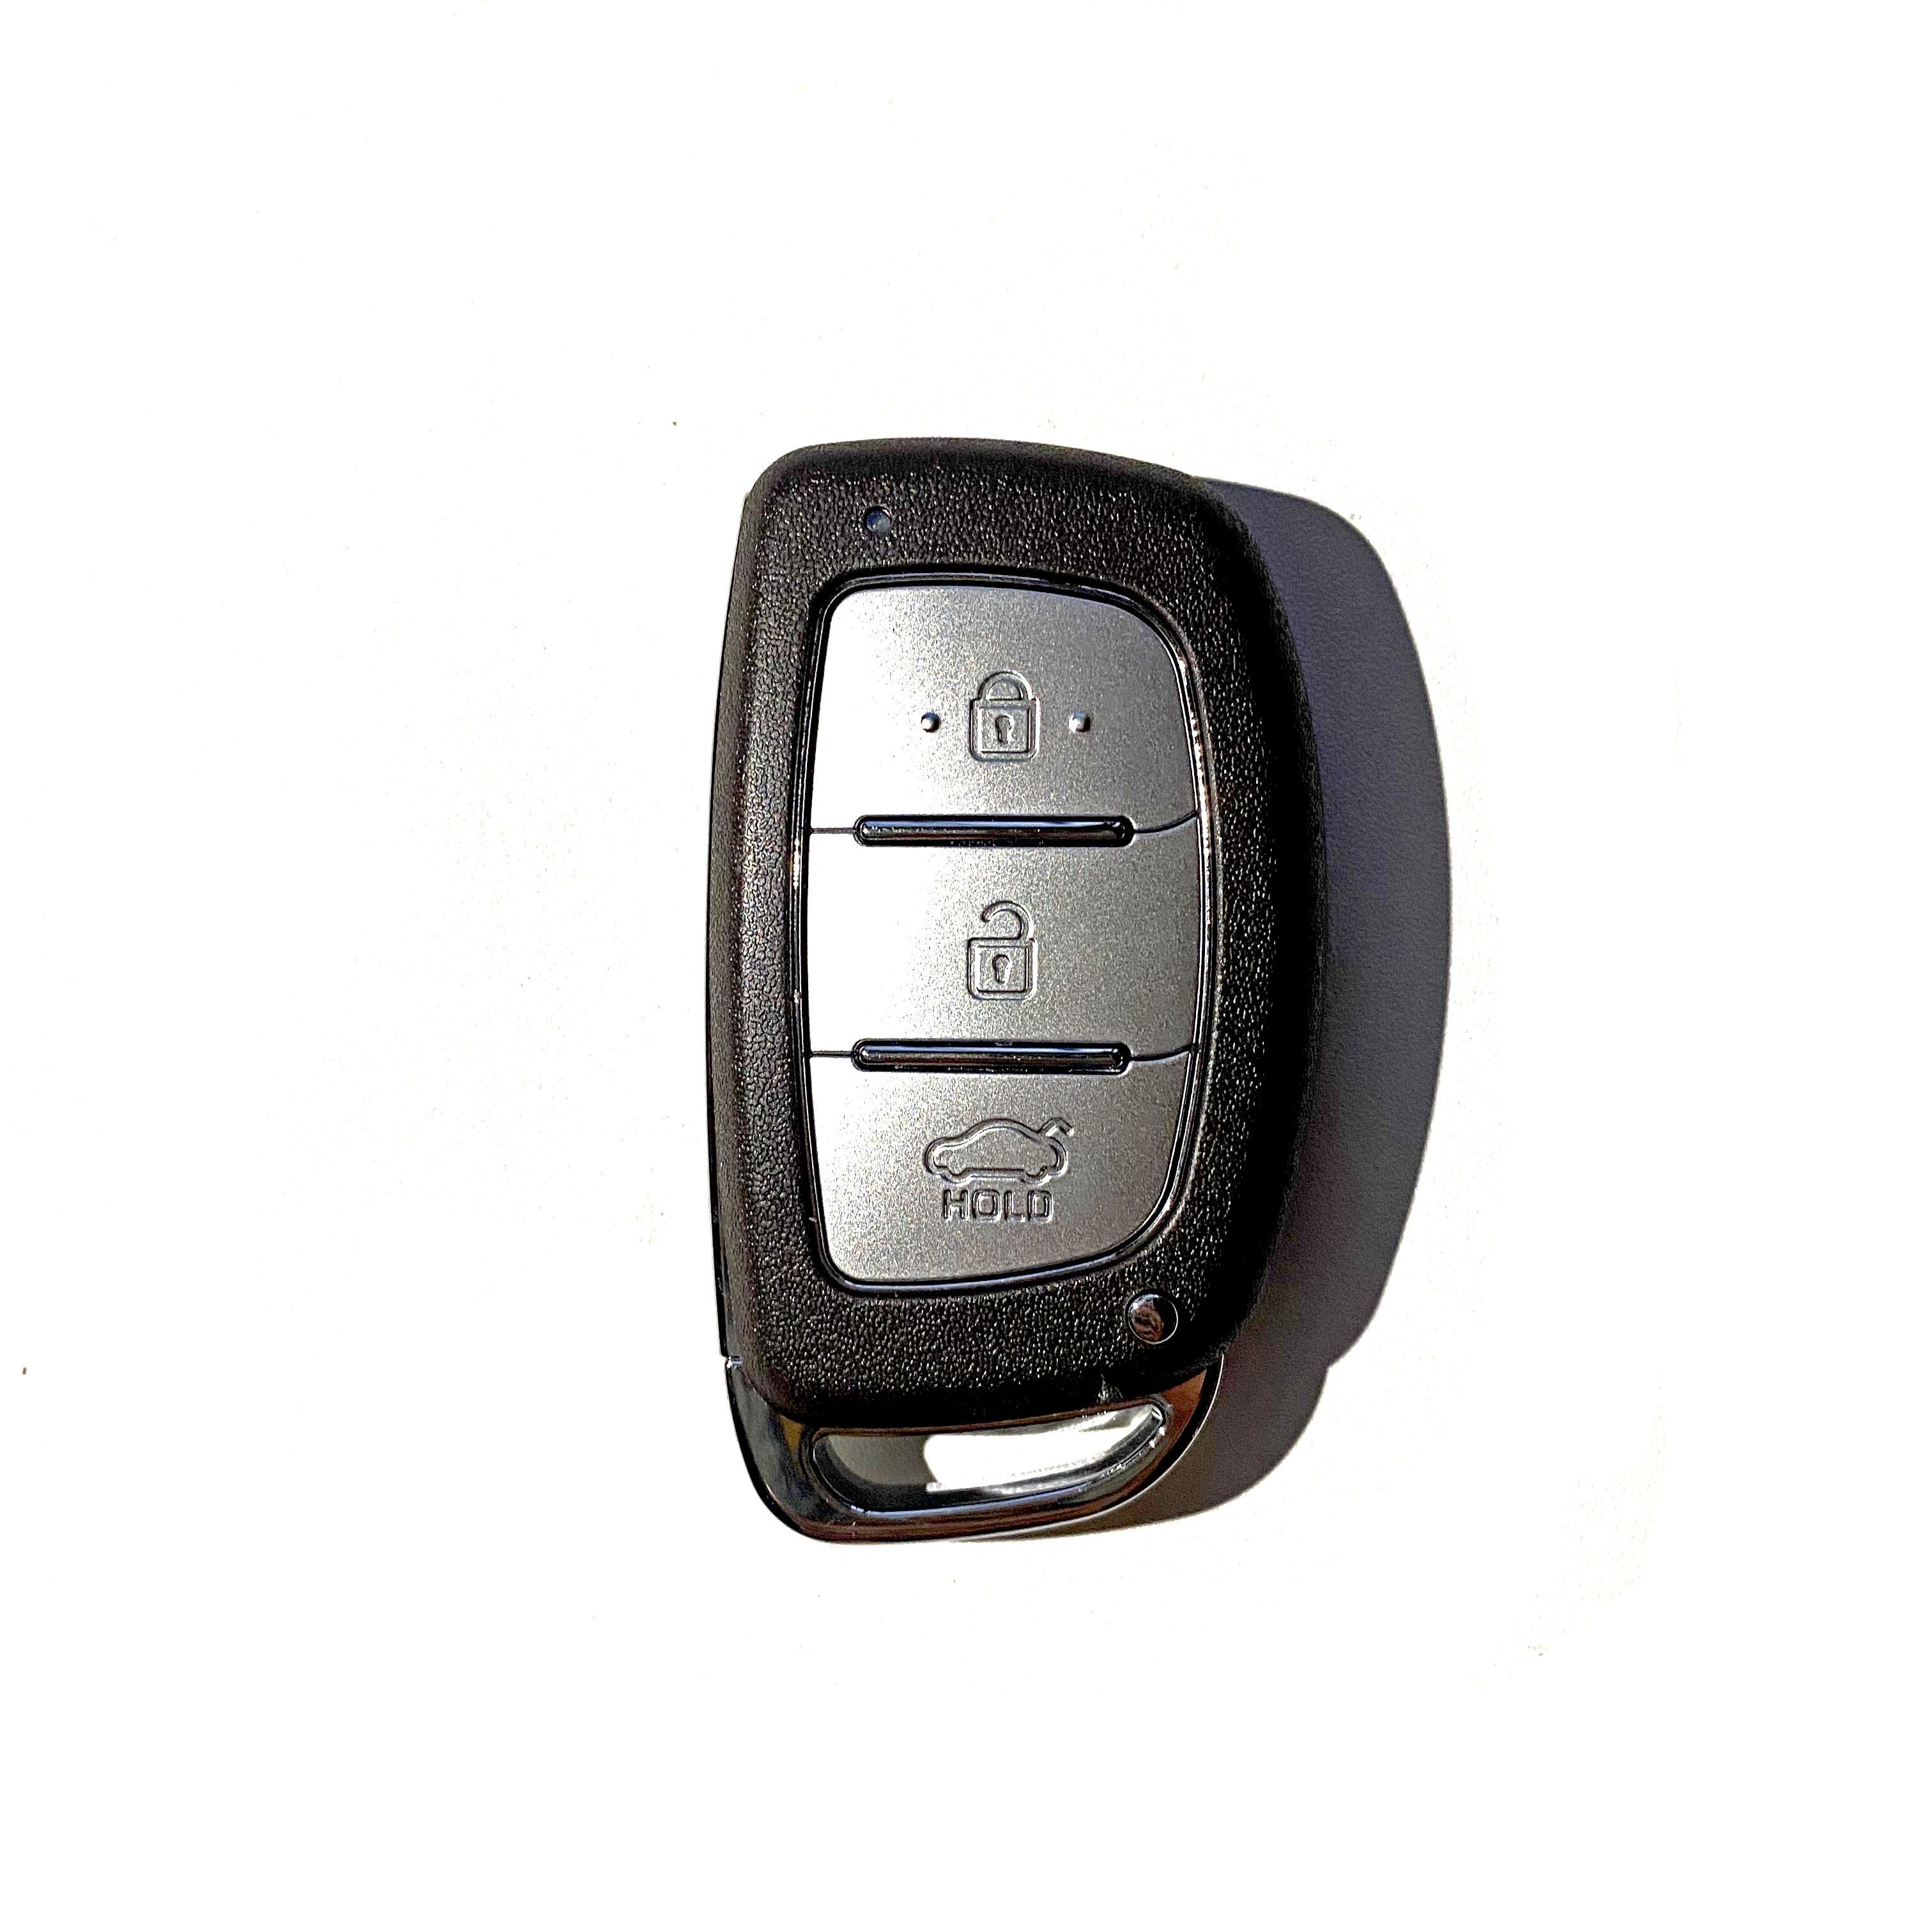 3 Buttons 434 MHz Smart Proximity Key for Hyundai - 95440-D3500 - ID47